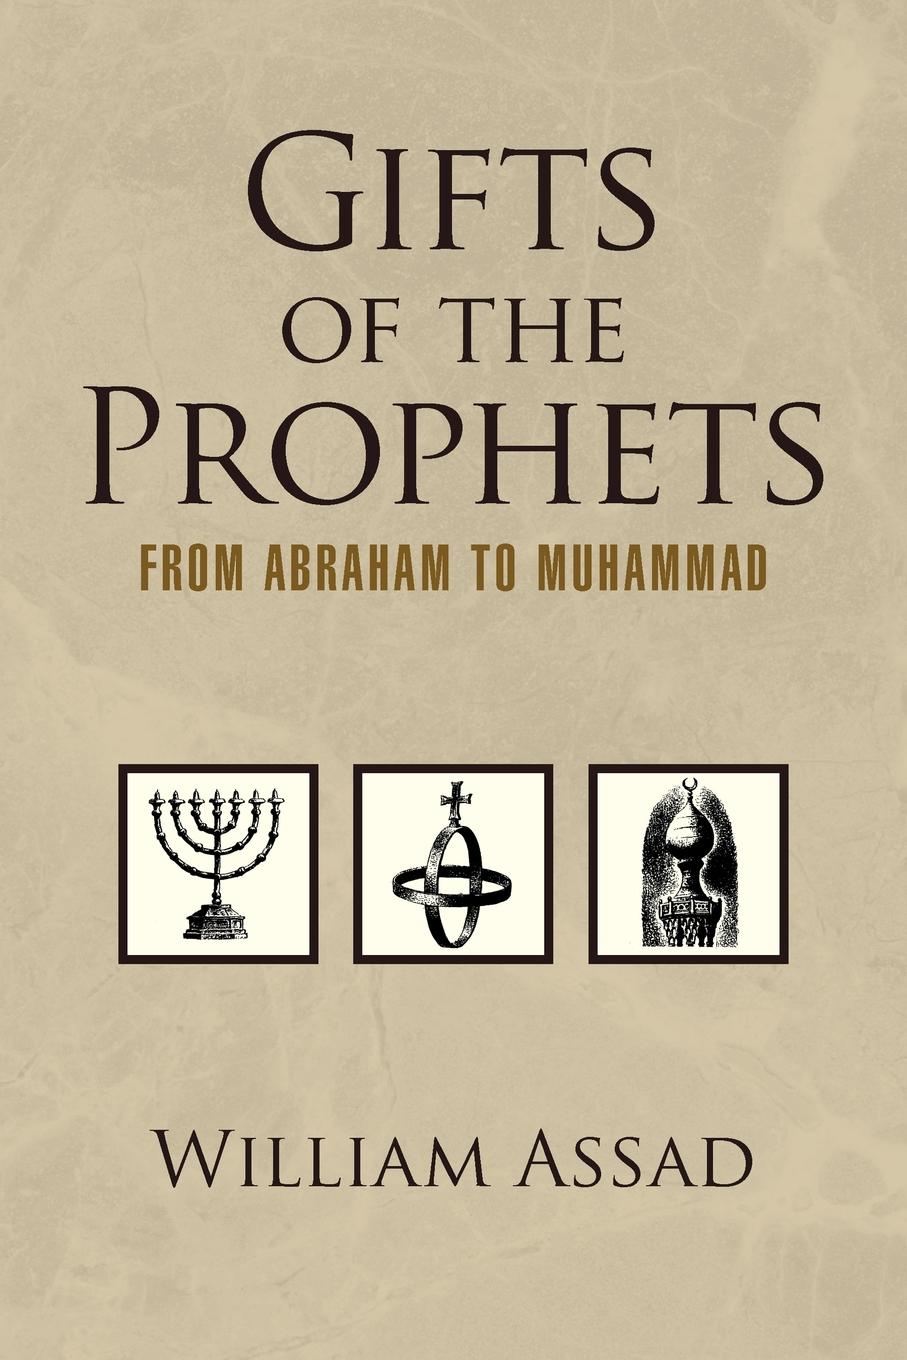 Assad M. a. Ed William Ed, Gifts of the Prophets from Abraham to Muhammad